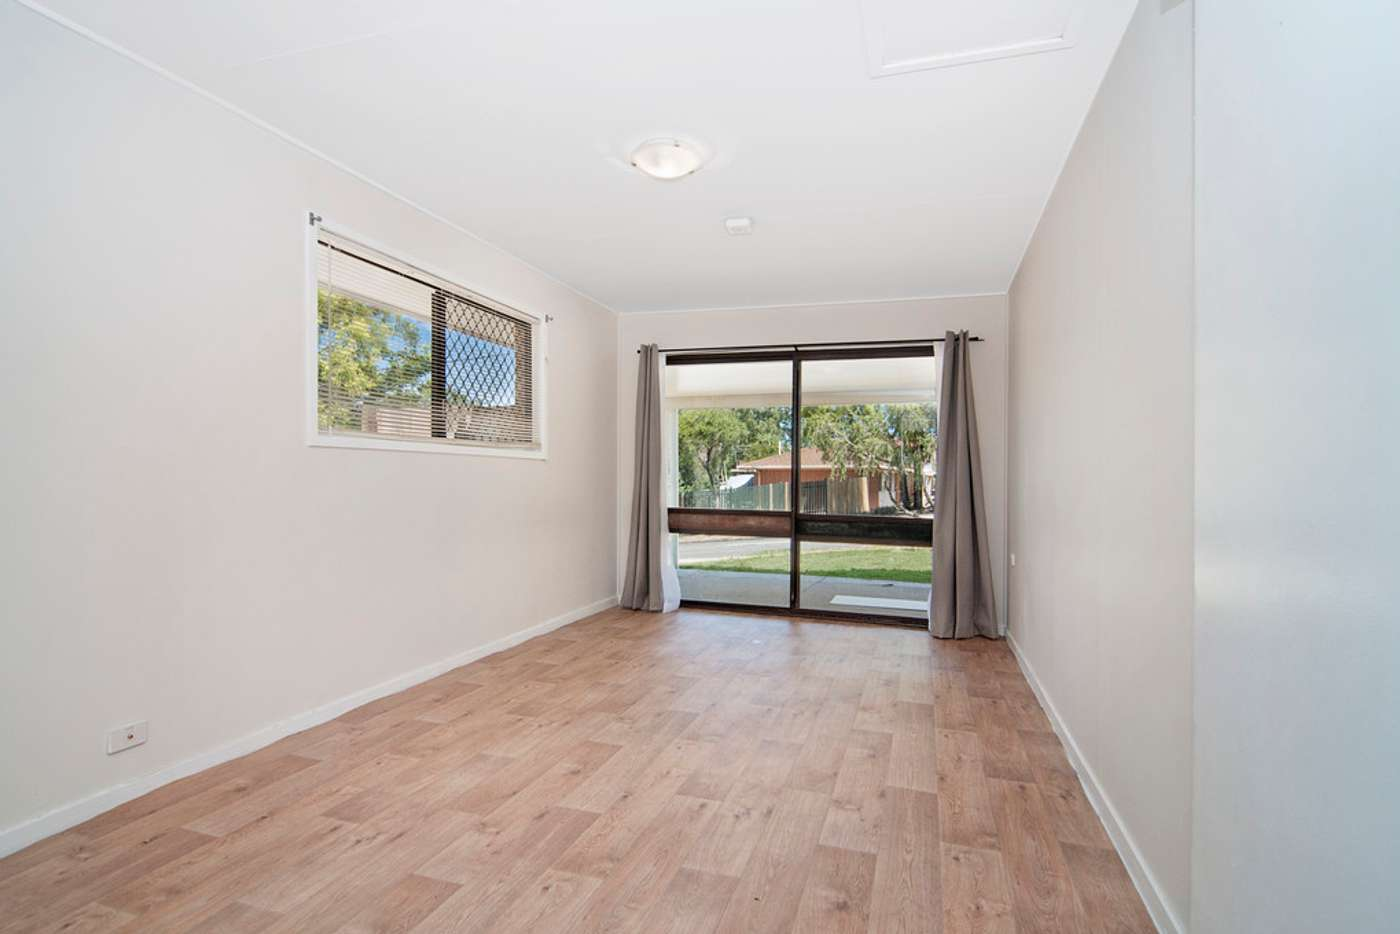 Sixth view of Homely house listing, 7 Sapium Street, Kingston QLD 4114